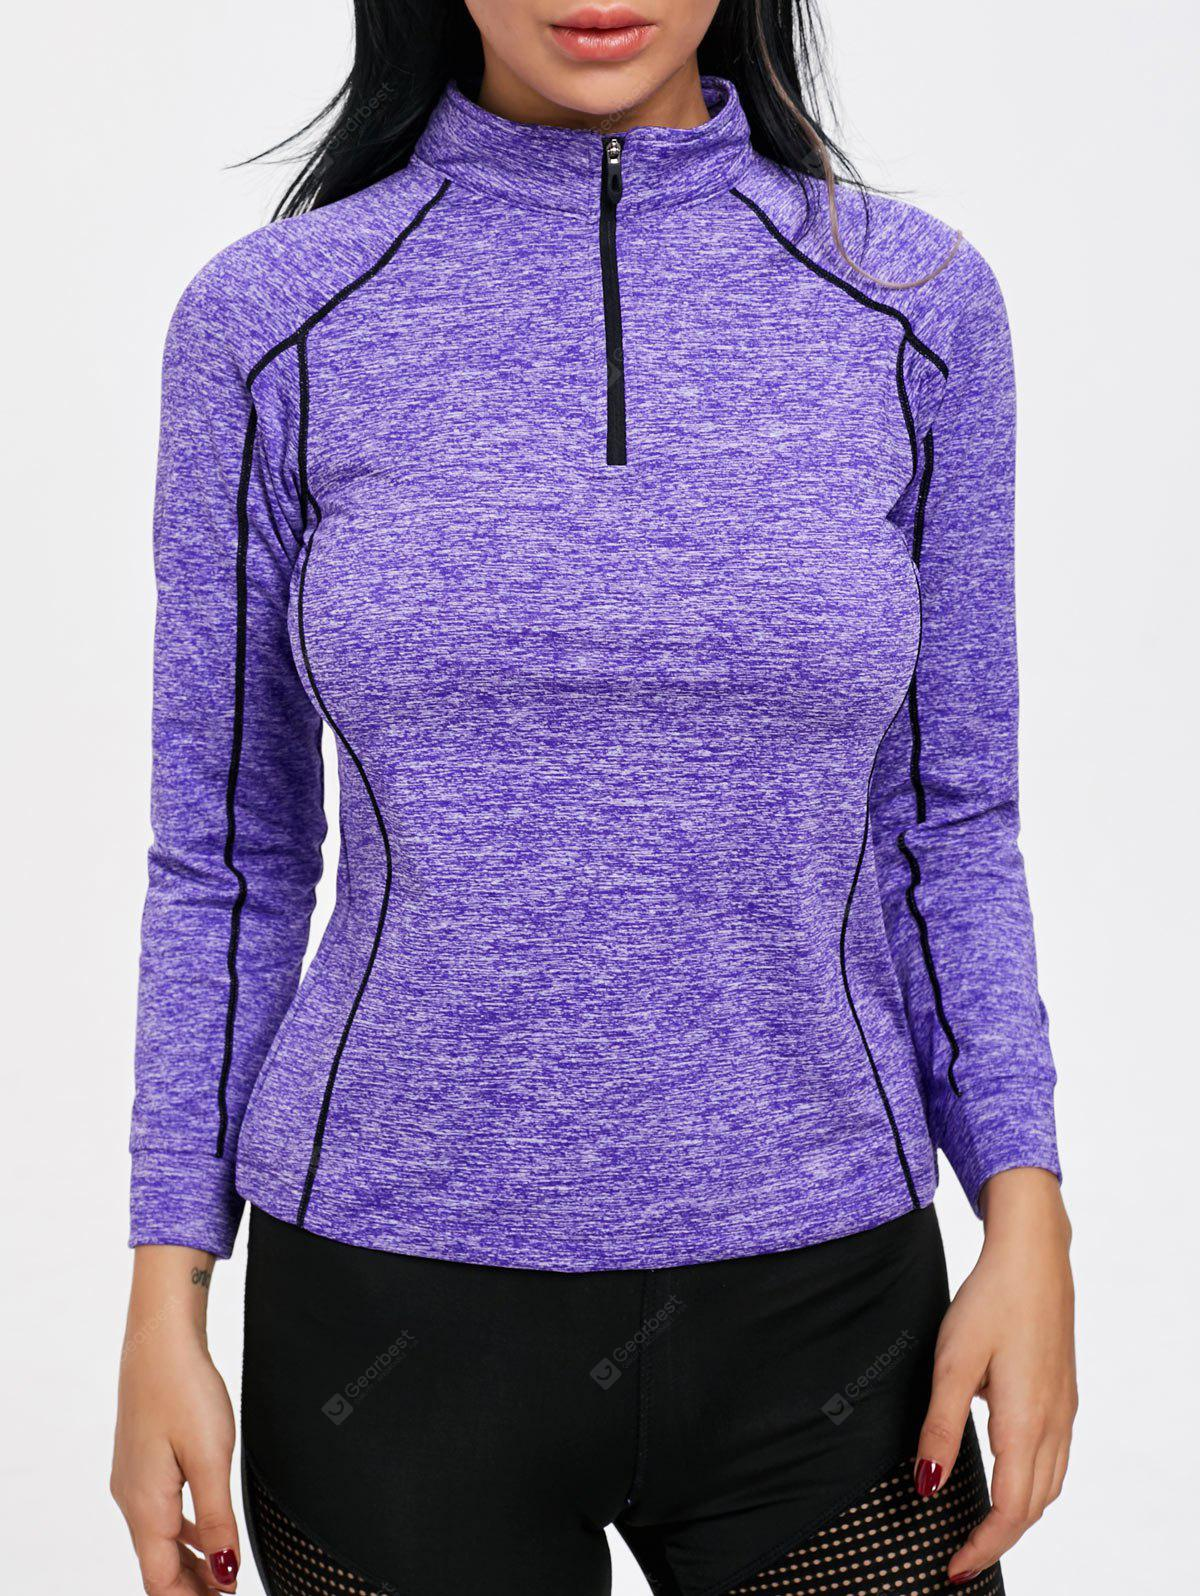 Contrast High Neck Half Zip Sports T-shirt